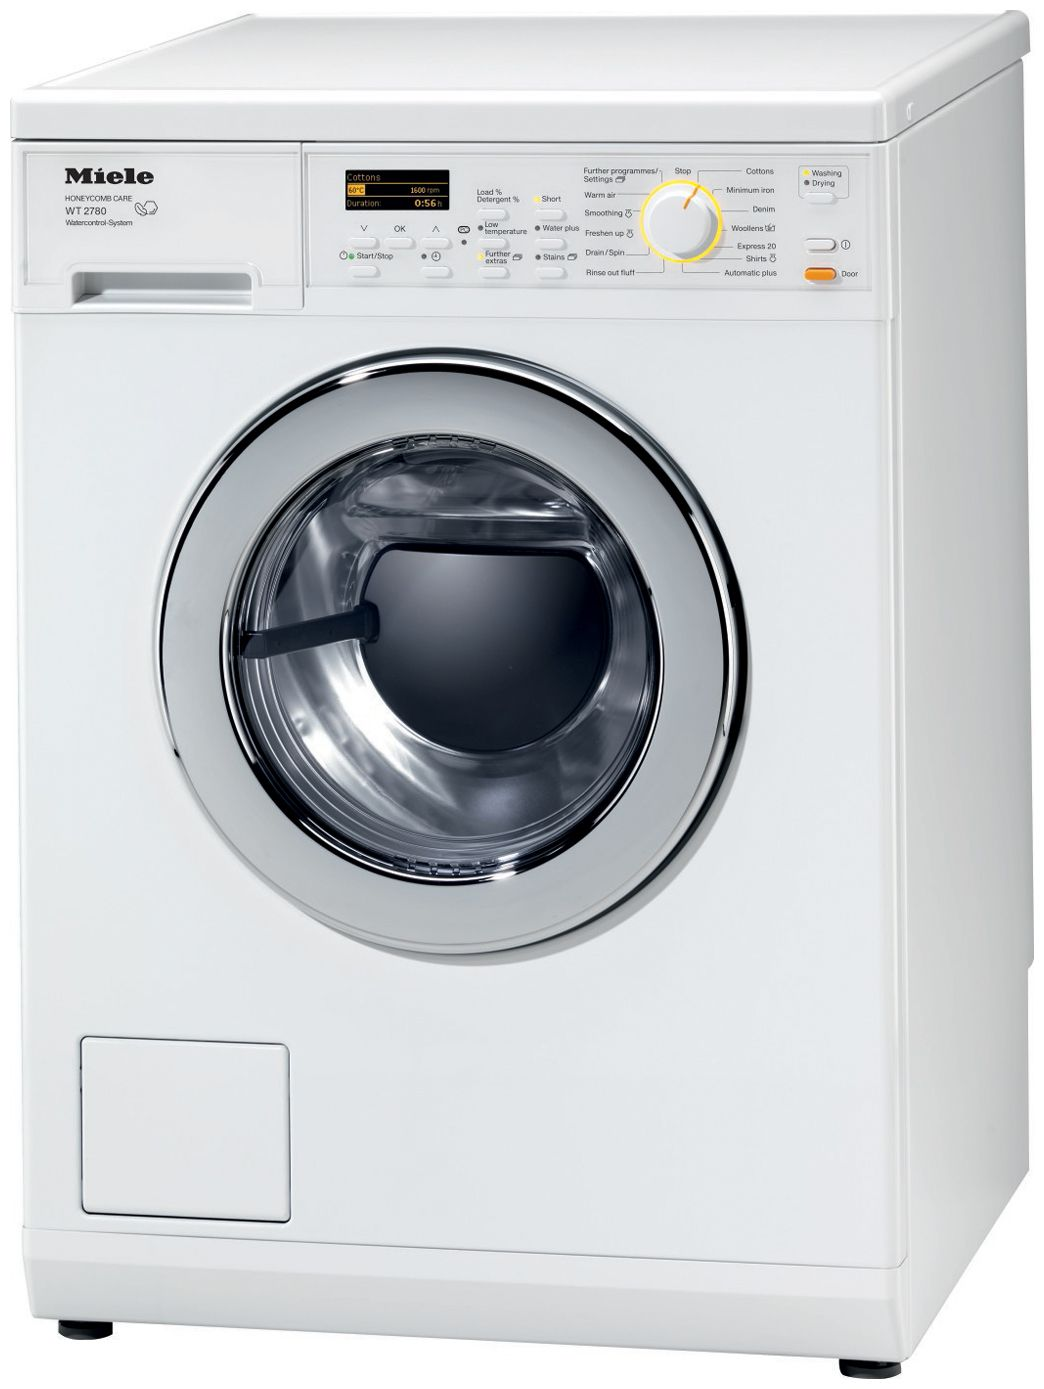 Miele Washer Dryer Miele Washer Dryer Combination Washer